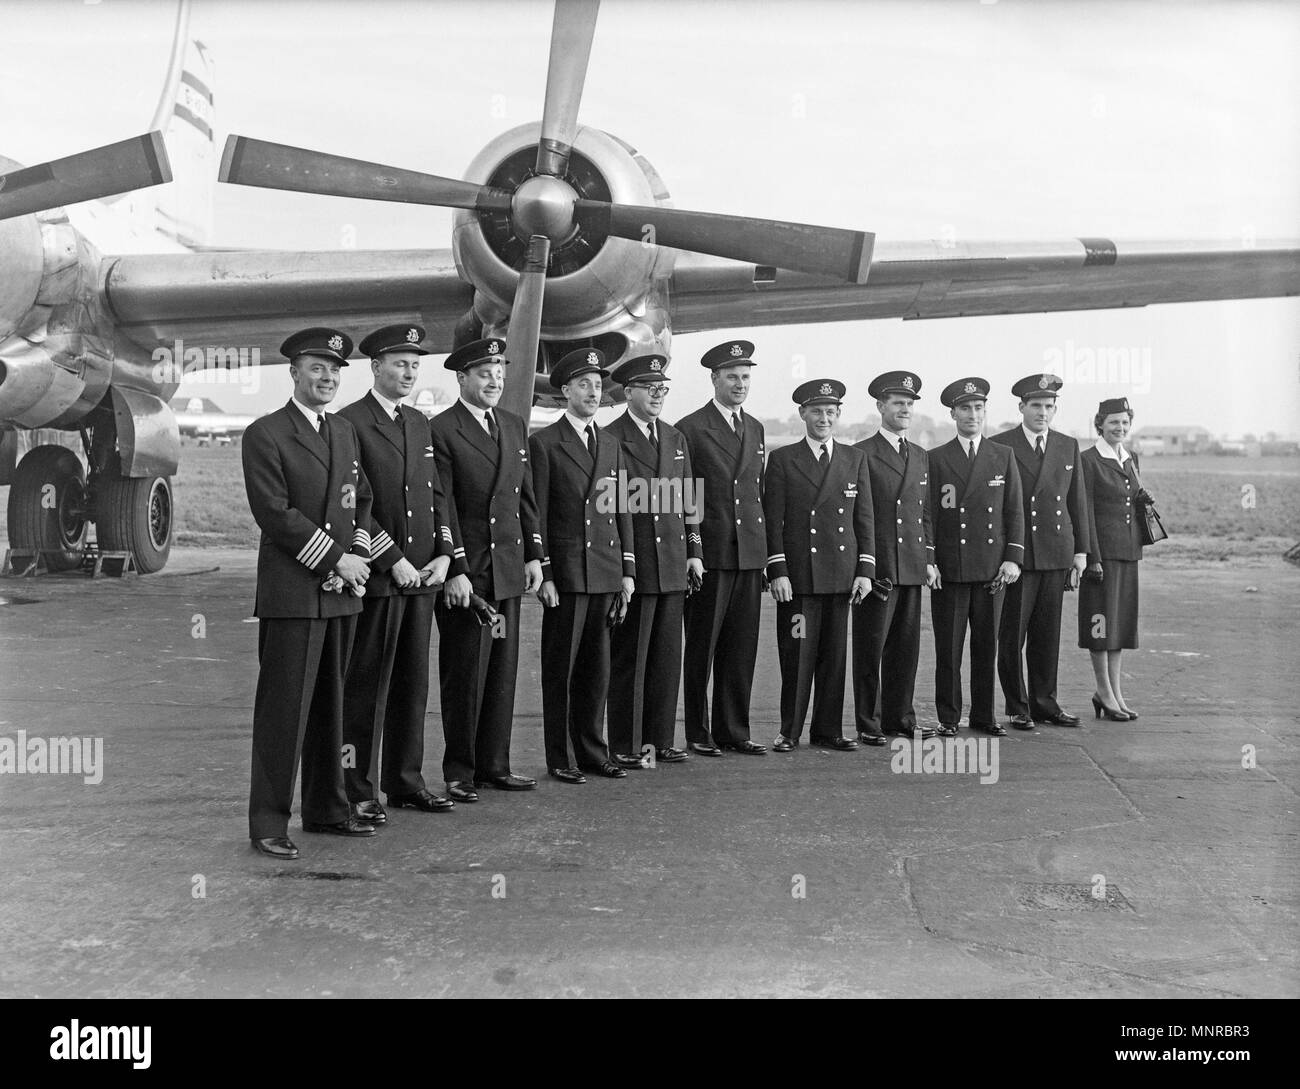 The BOAC crew who flew Queen Elizabeth to Jamaica in 1953, posing infant of the Boeing Stratocruiser which was used for the trip. - Stock Image